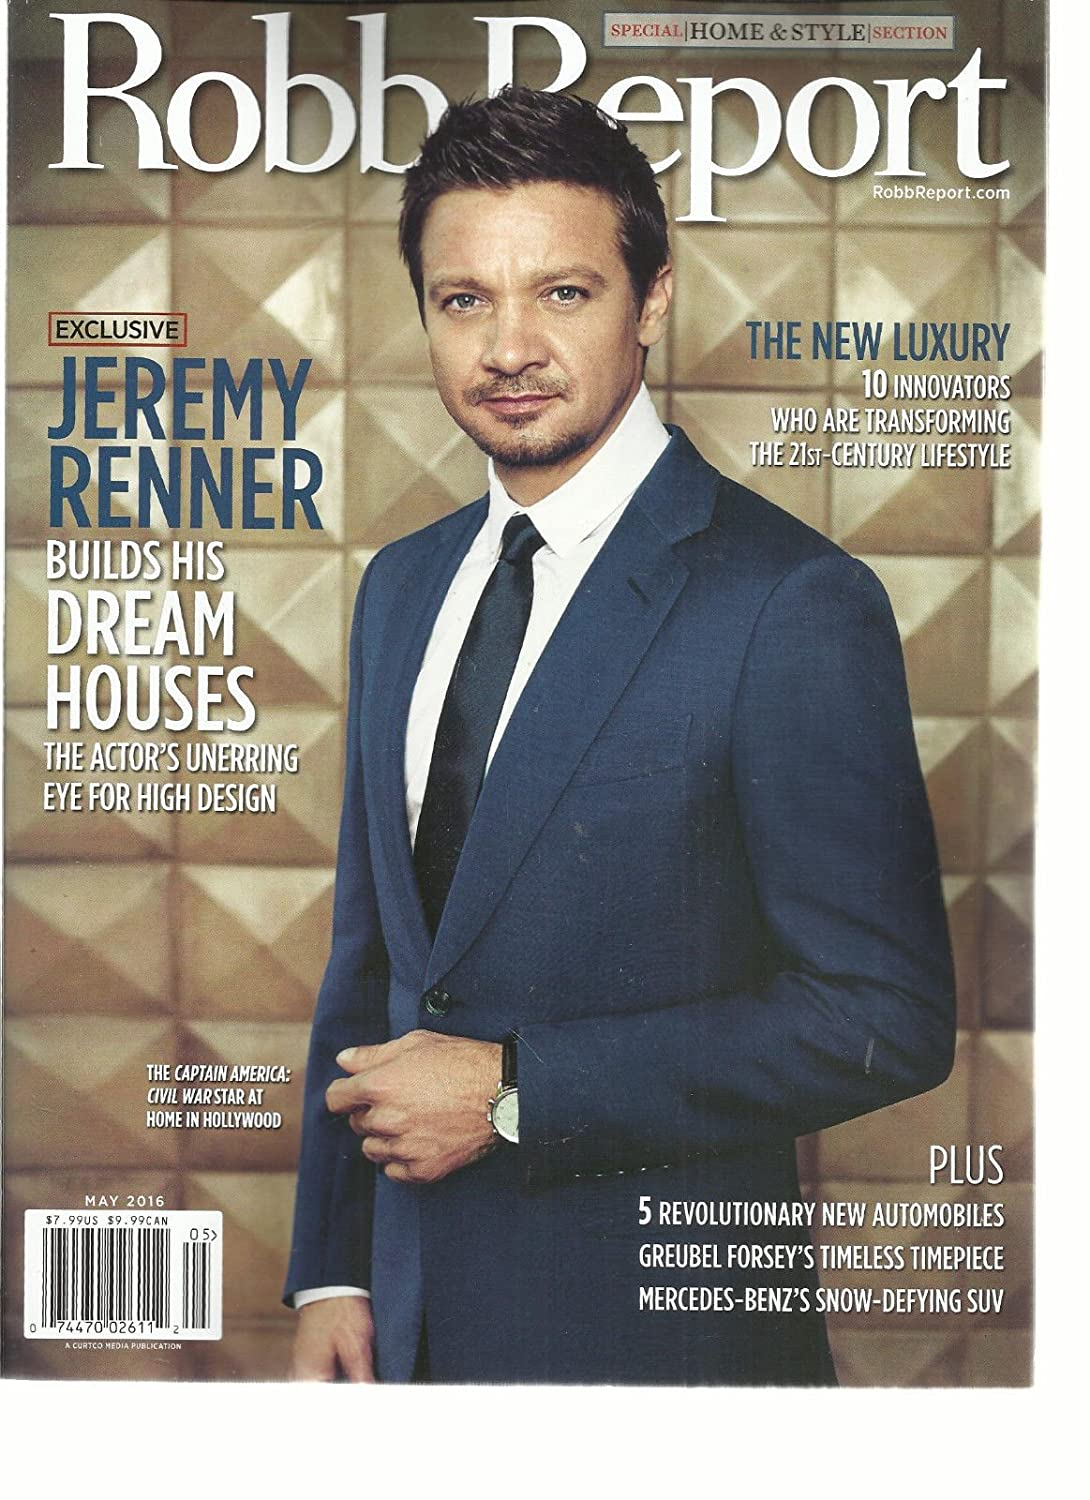 ROBB REPORT, MAY, 2016 VOL. 40 NO.5 (JEREMY RENNER BUILDS HIS DREAM HOUSES s3457